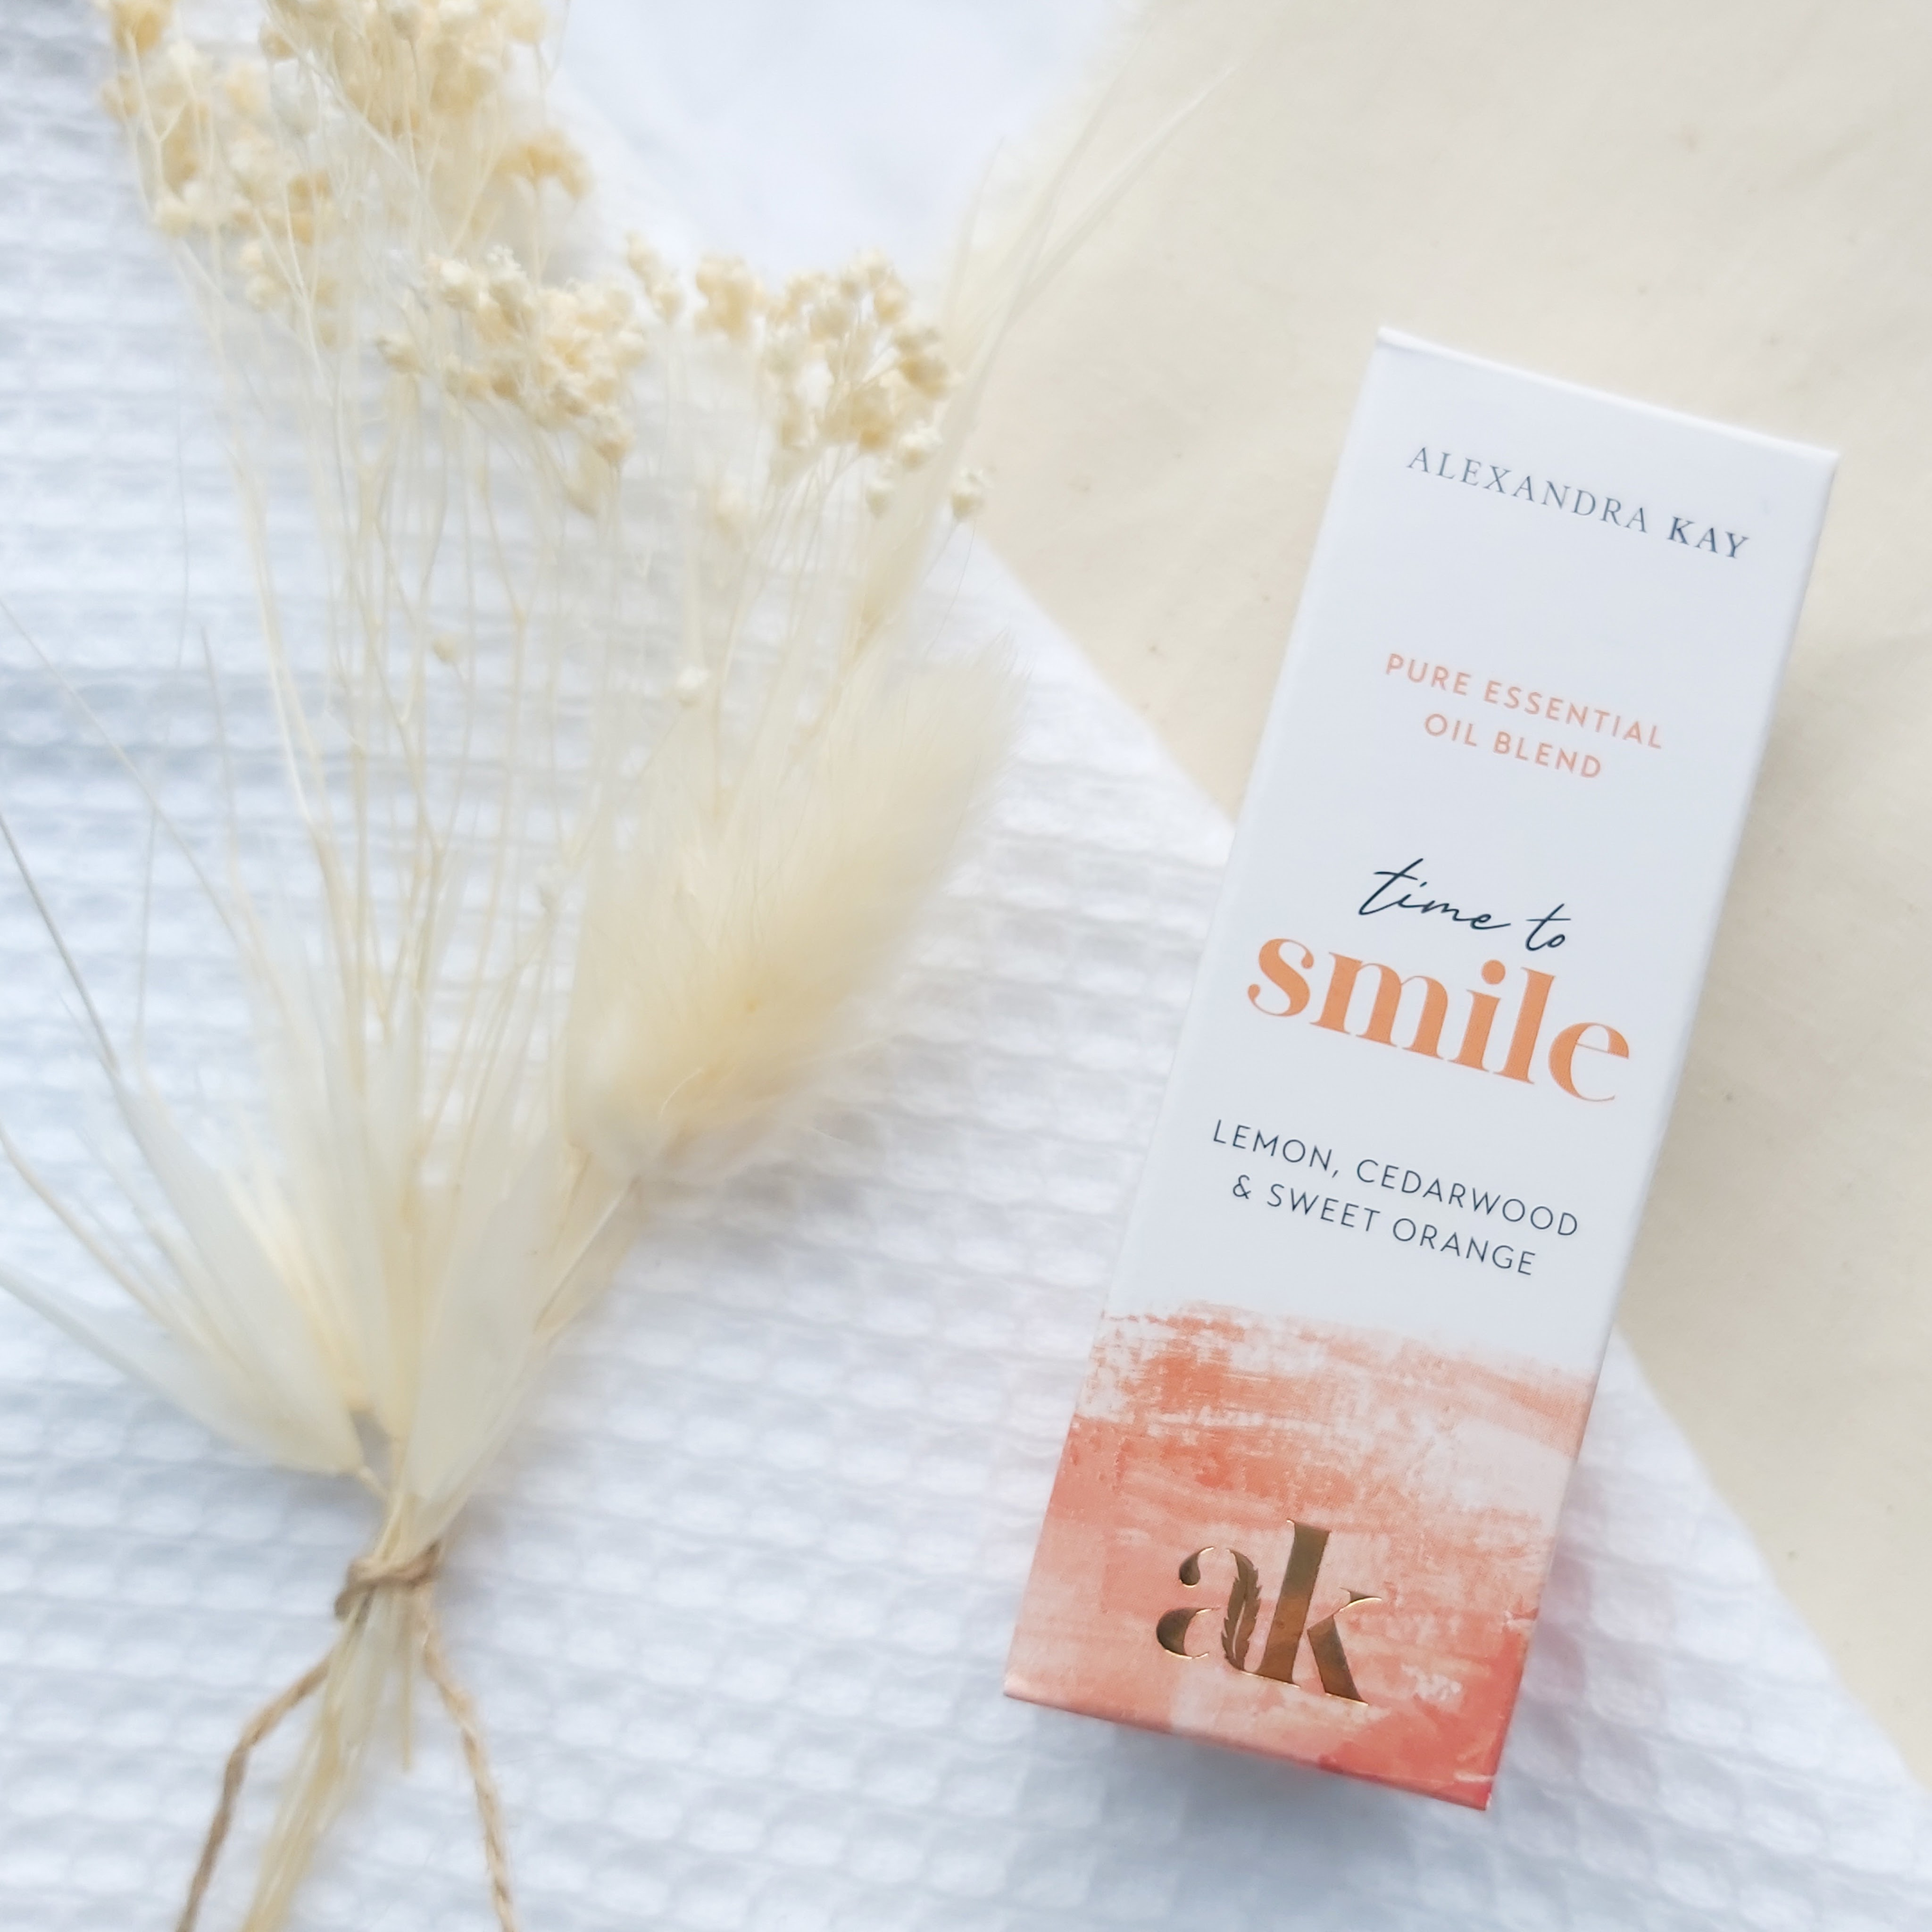 Green People's Alexandra Kay Wellness Time to Smile Essential Oil Box on a white flannel and linen cloth with dried flowers. Review by Beauty Folio